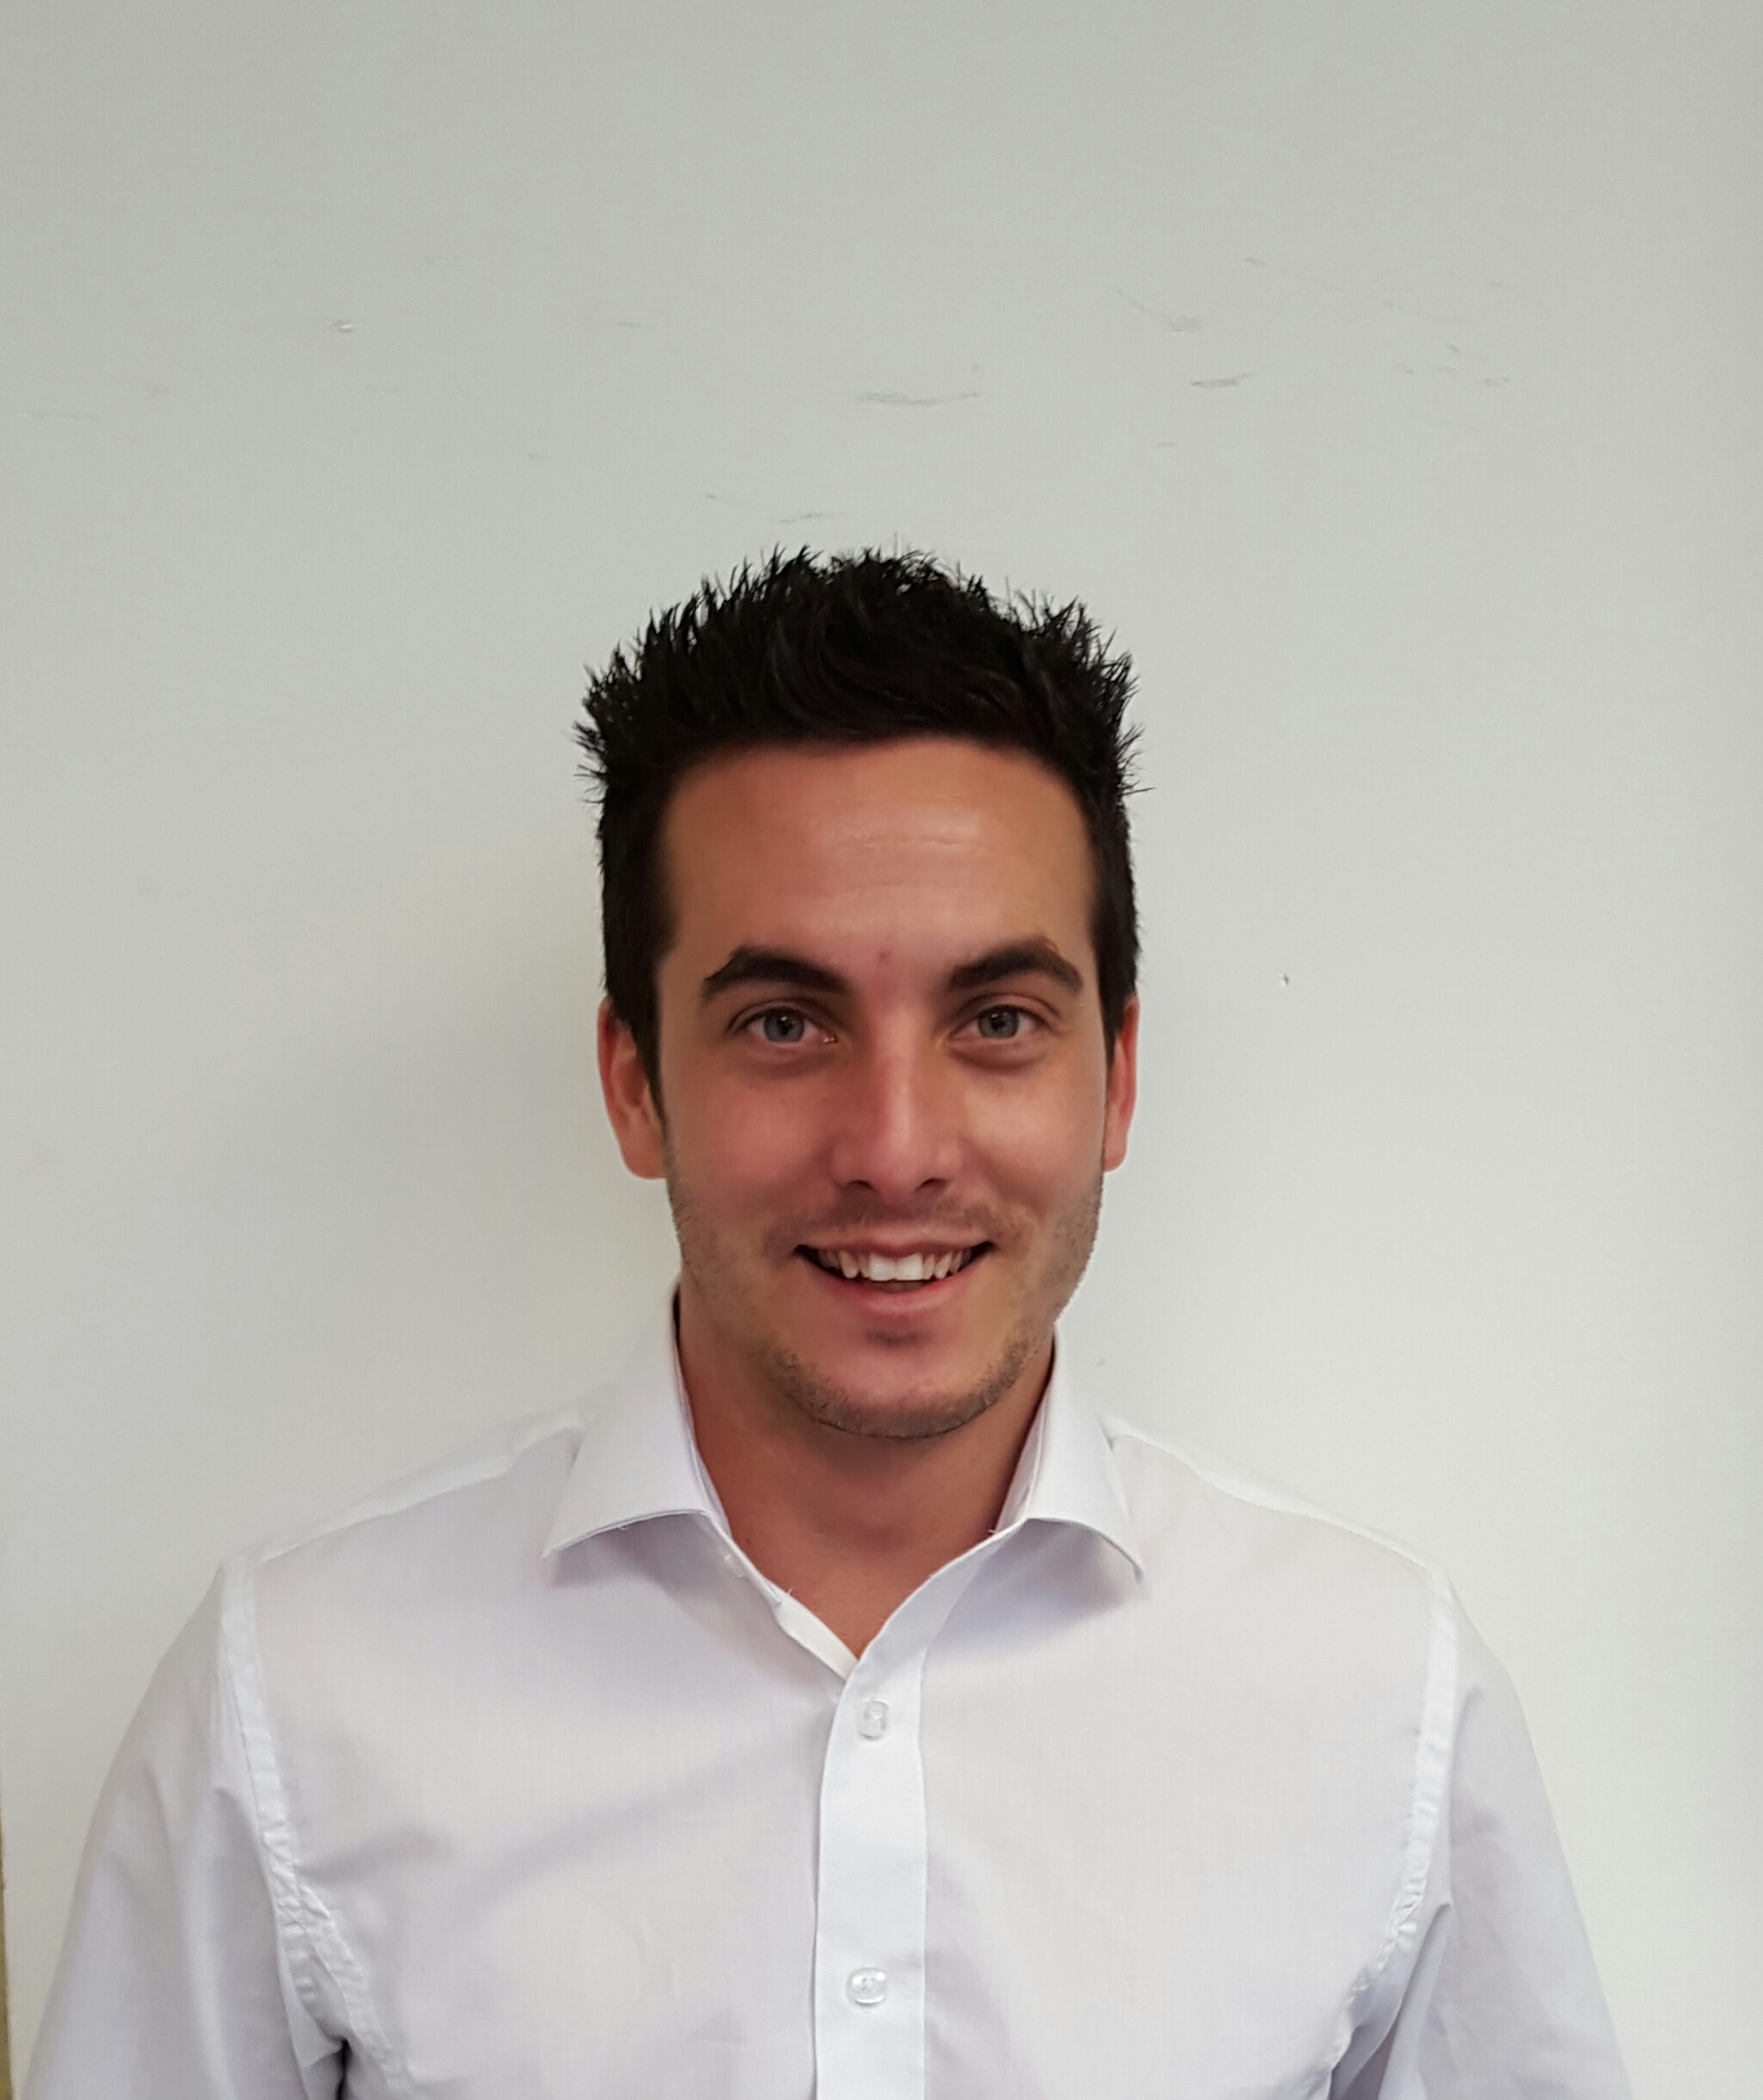 Joe Turner, Director of Strategy at Focus Fitness UK